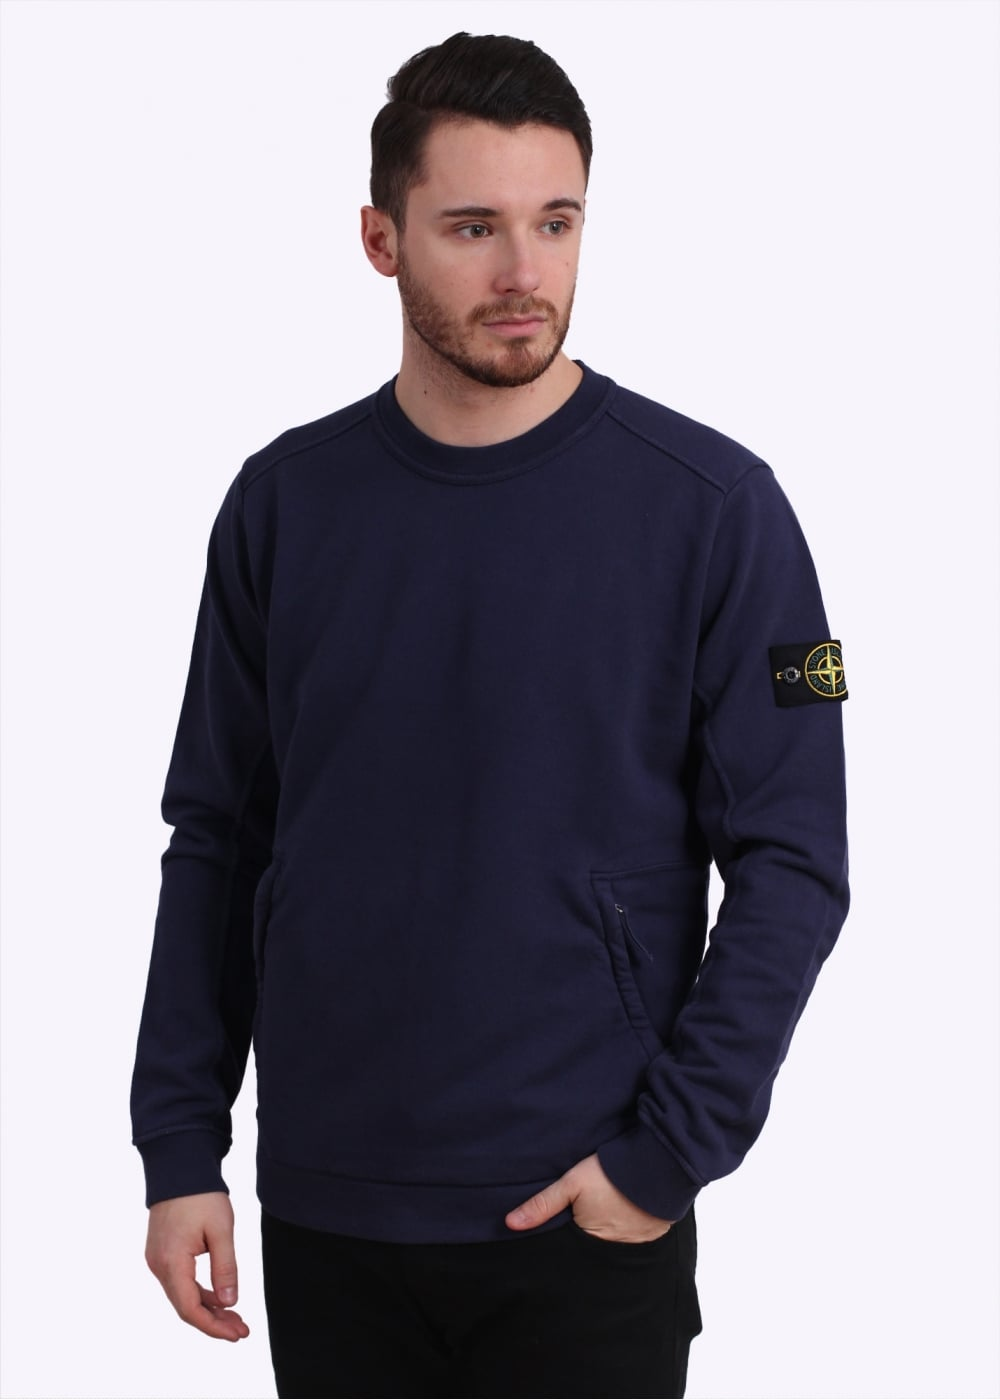 stone island zip logo sweatshirt navy. Black Bedroom Furniture Sets. Home Design Ideas